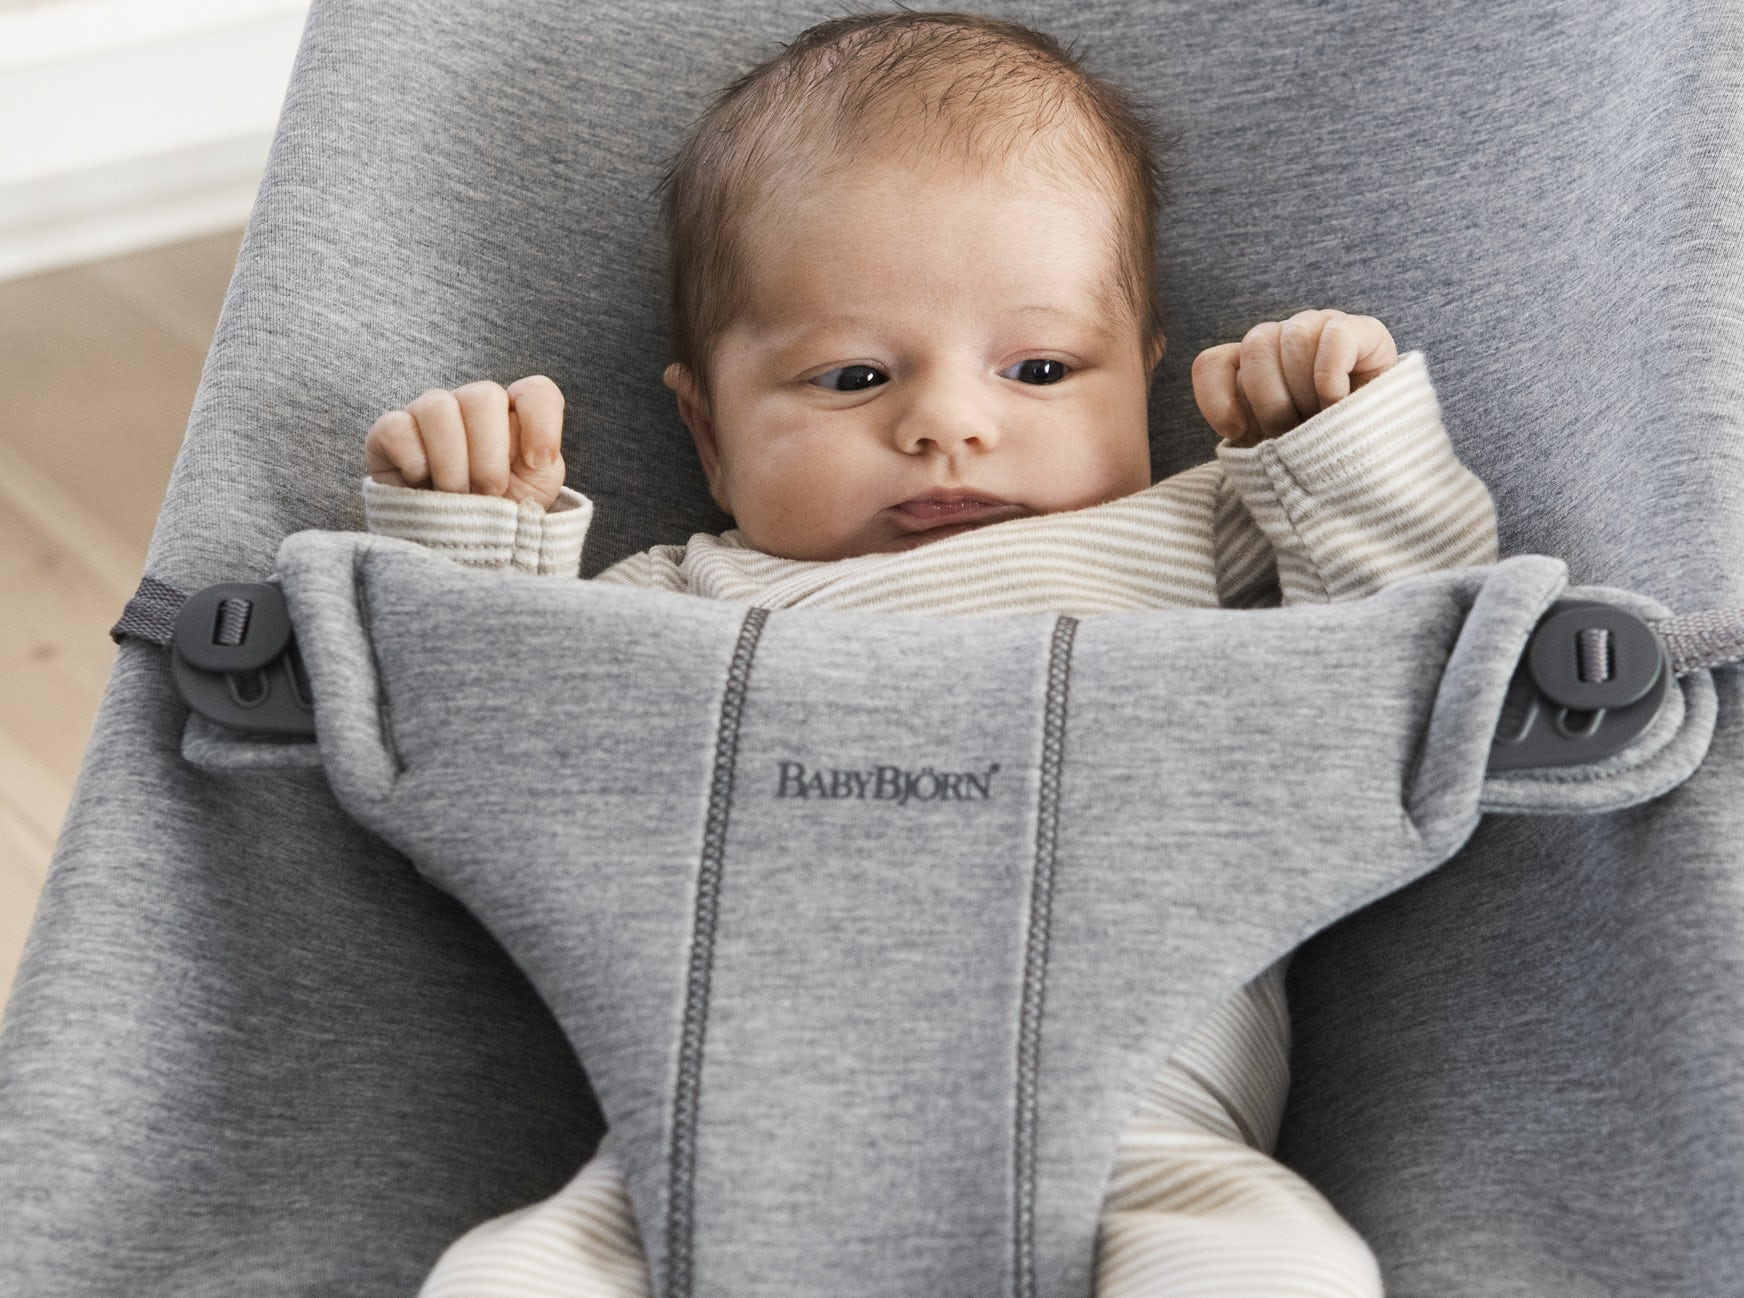 Bouncer Bliss 3D Jersey Light grey 006072 - BABYBJÖRN Ergonomic baby bouncer that gives your newborn the proper support